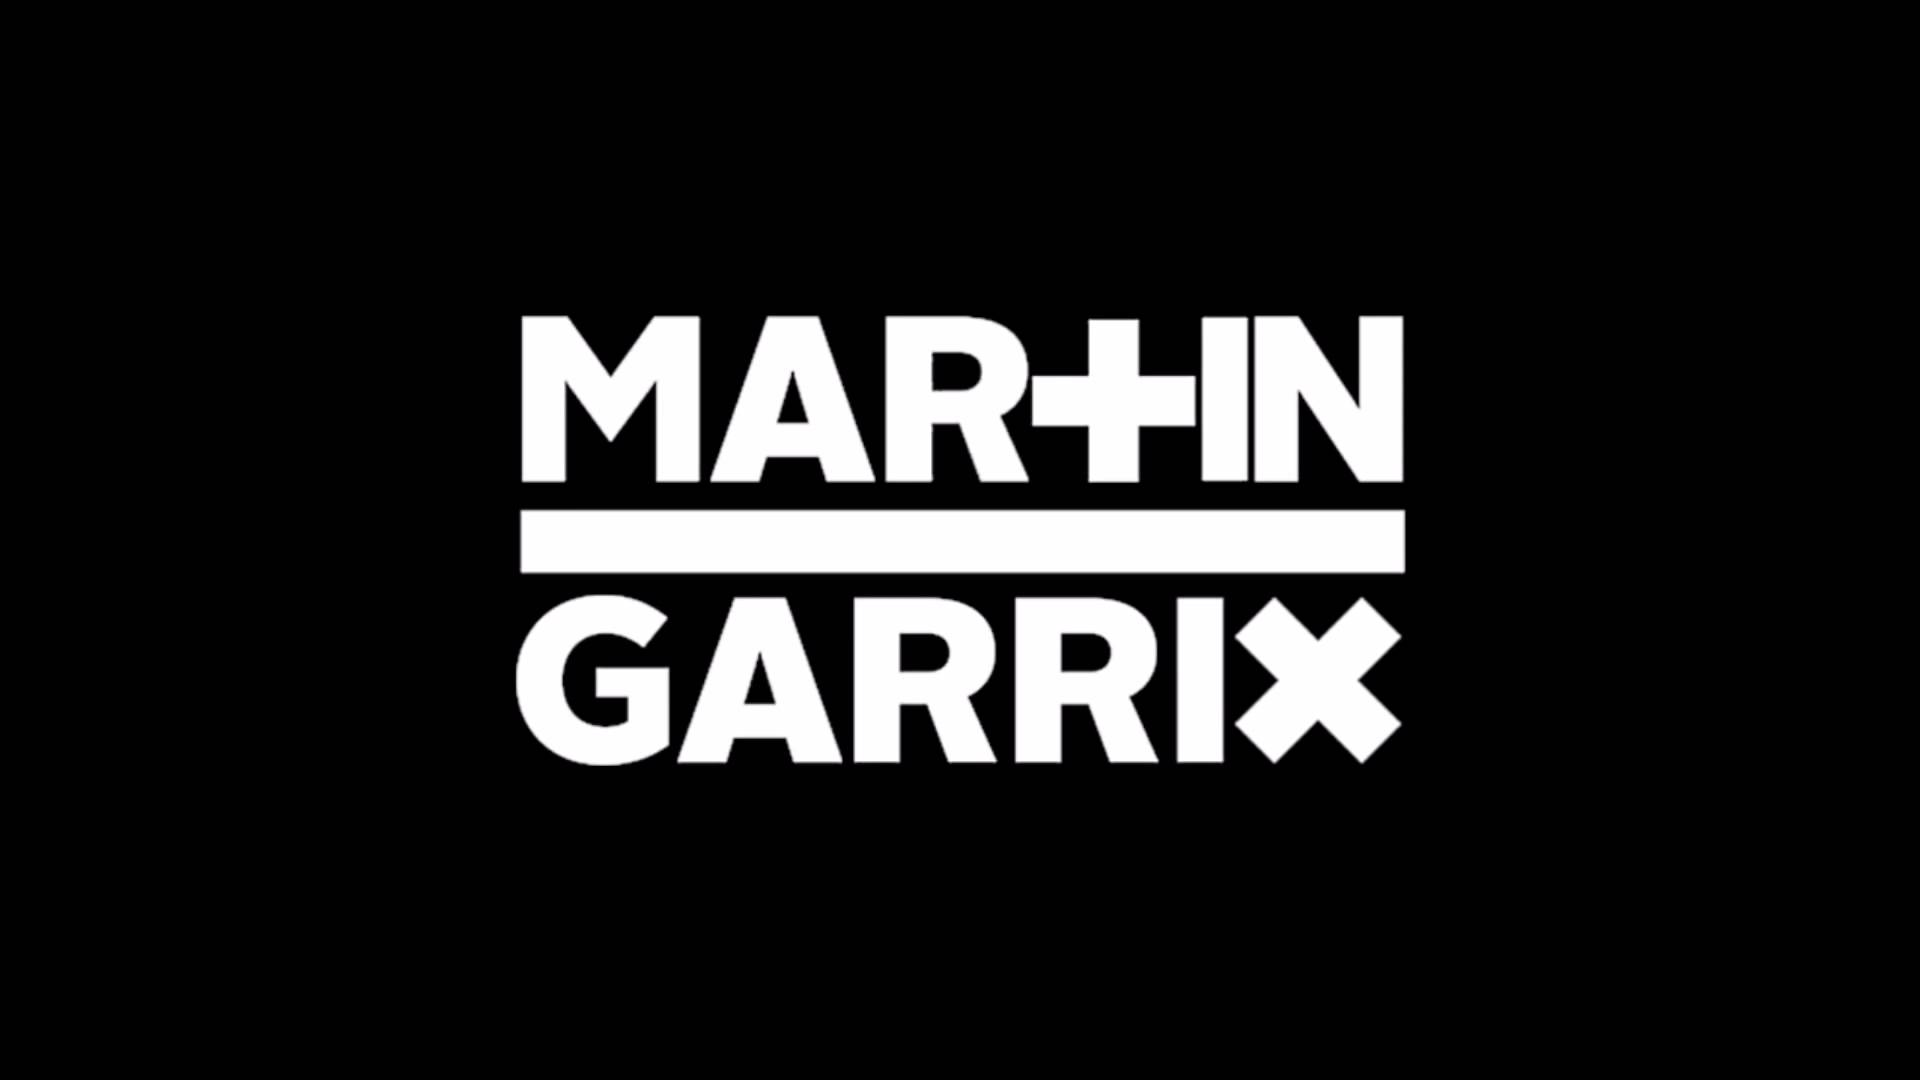 martin garrix logo wallpapers